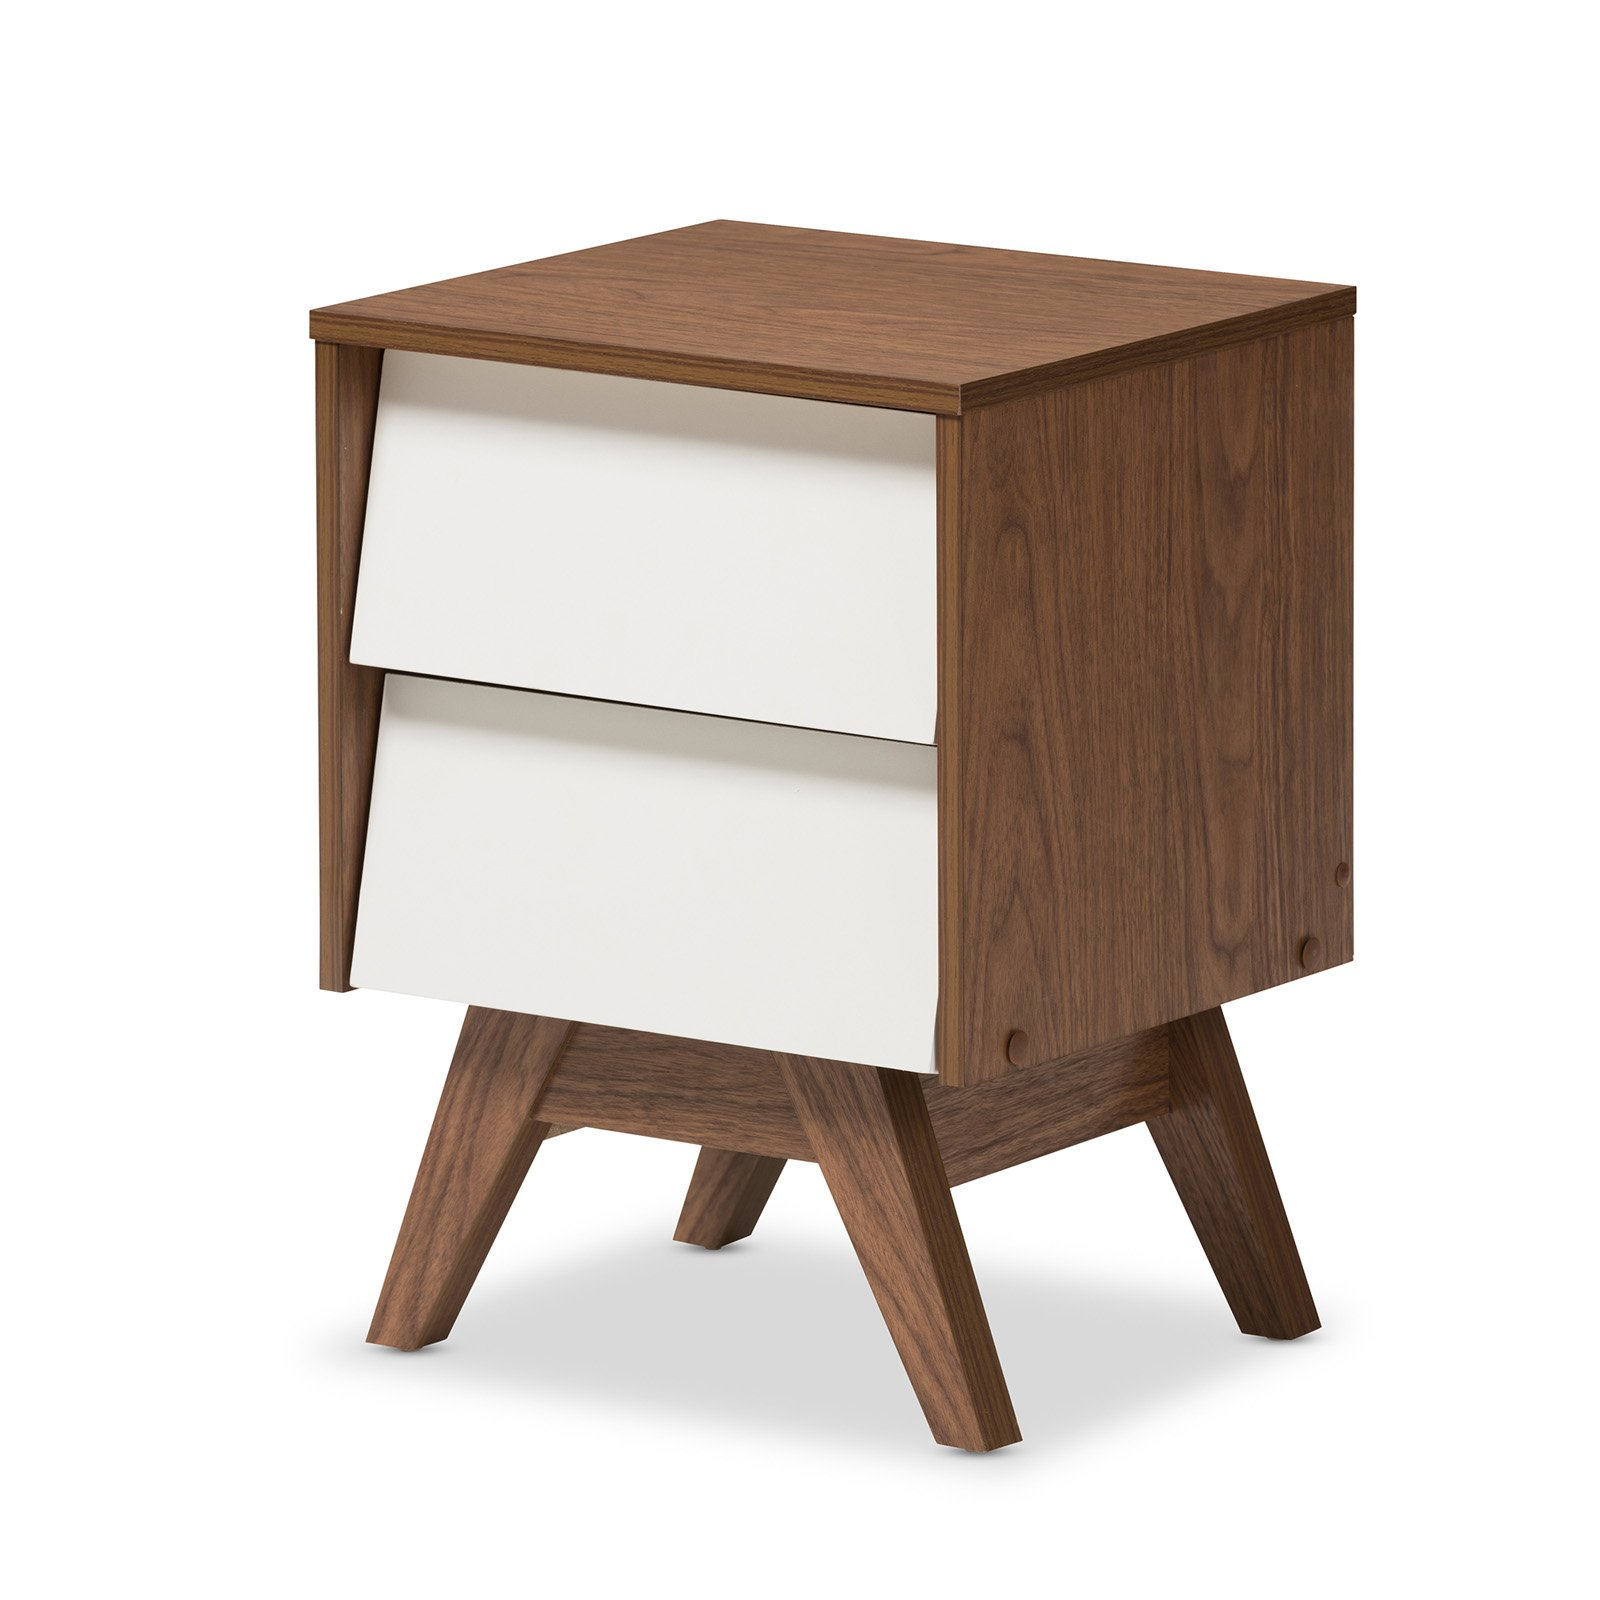 Baxton Studio Hildon 2-Drawer Storage Nightstand